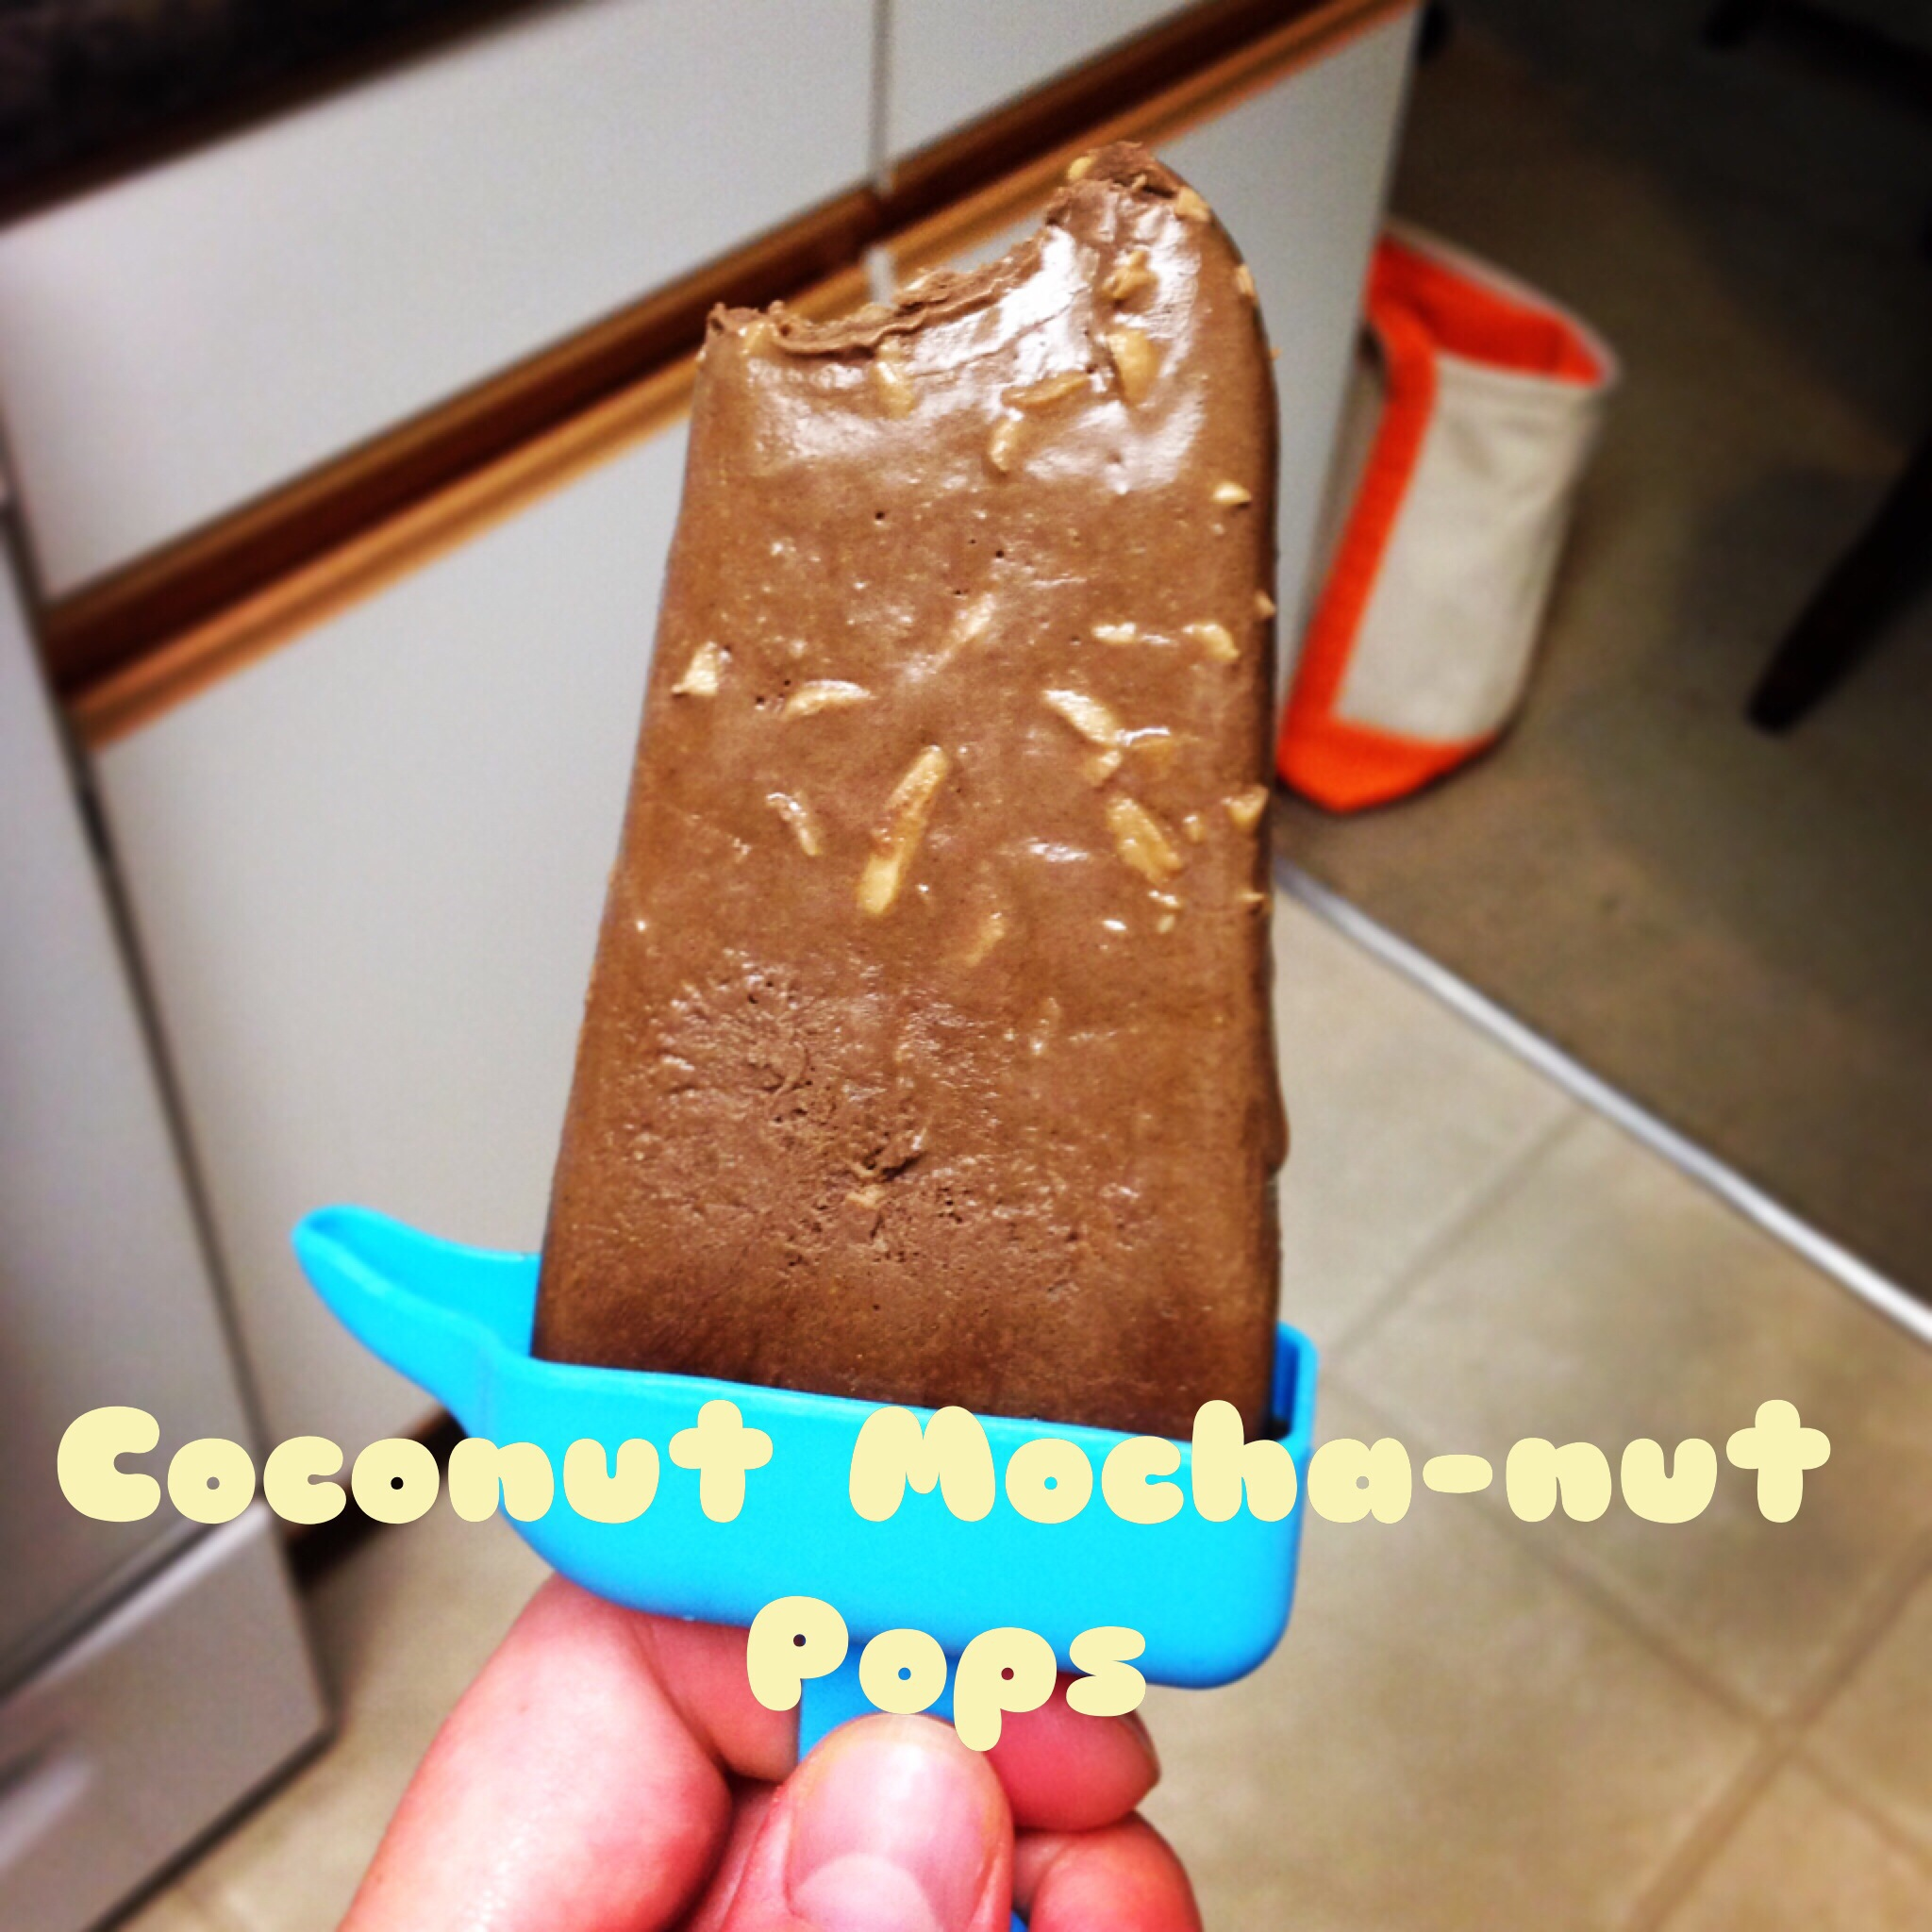 Coconut Mocha-Nut Pops [sans nuts]